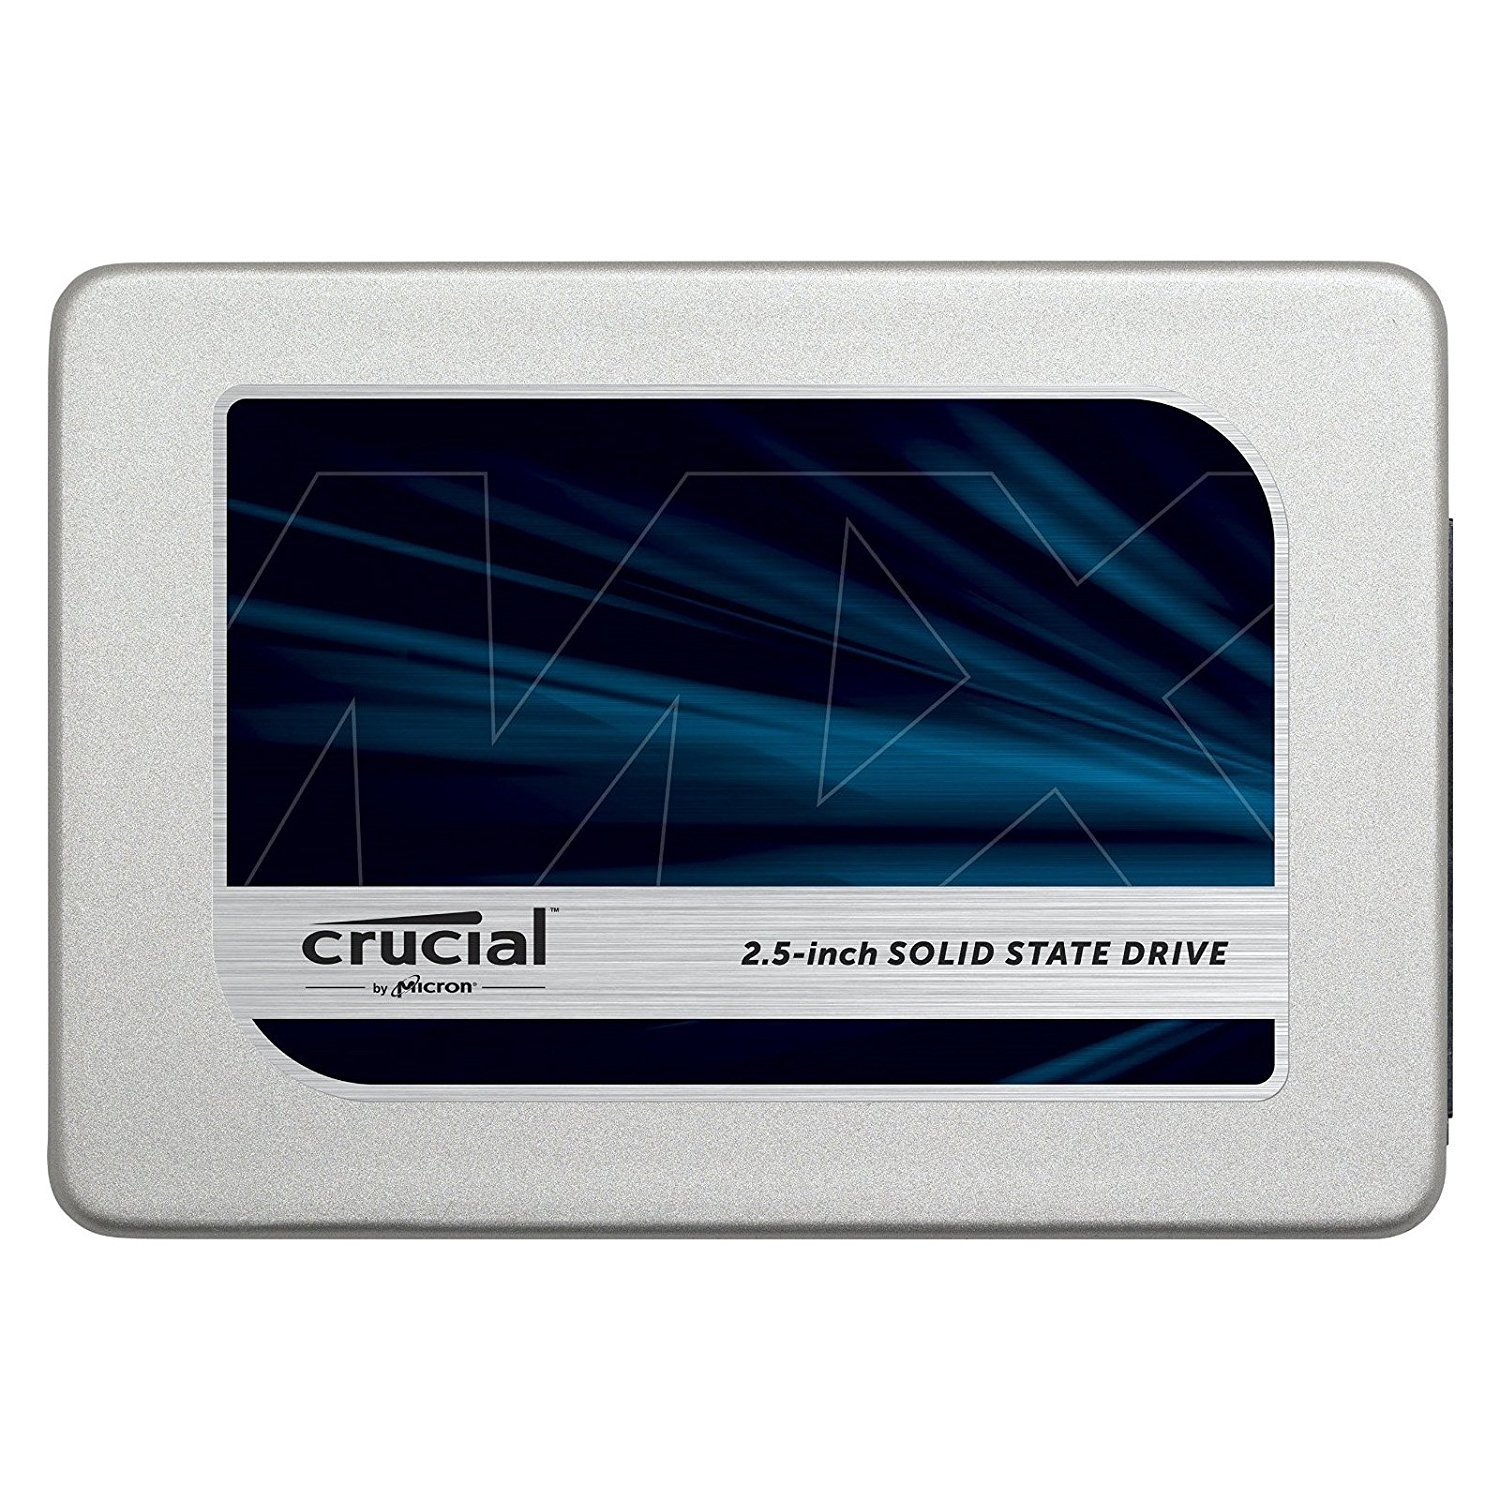 Crucial MX300 275GB SATA 2.5